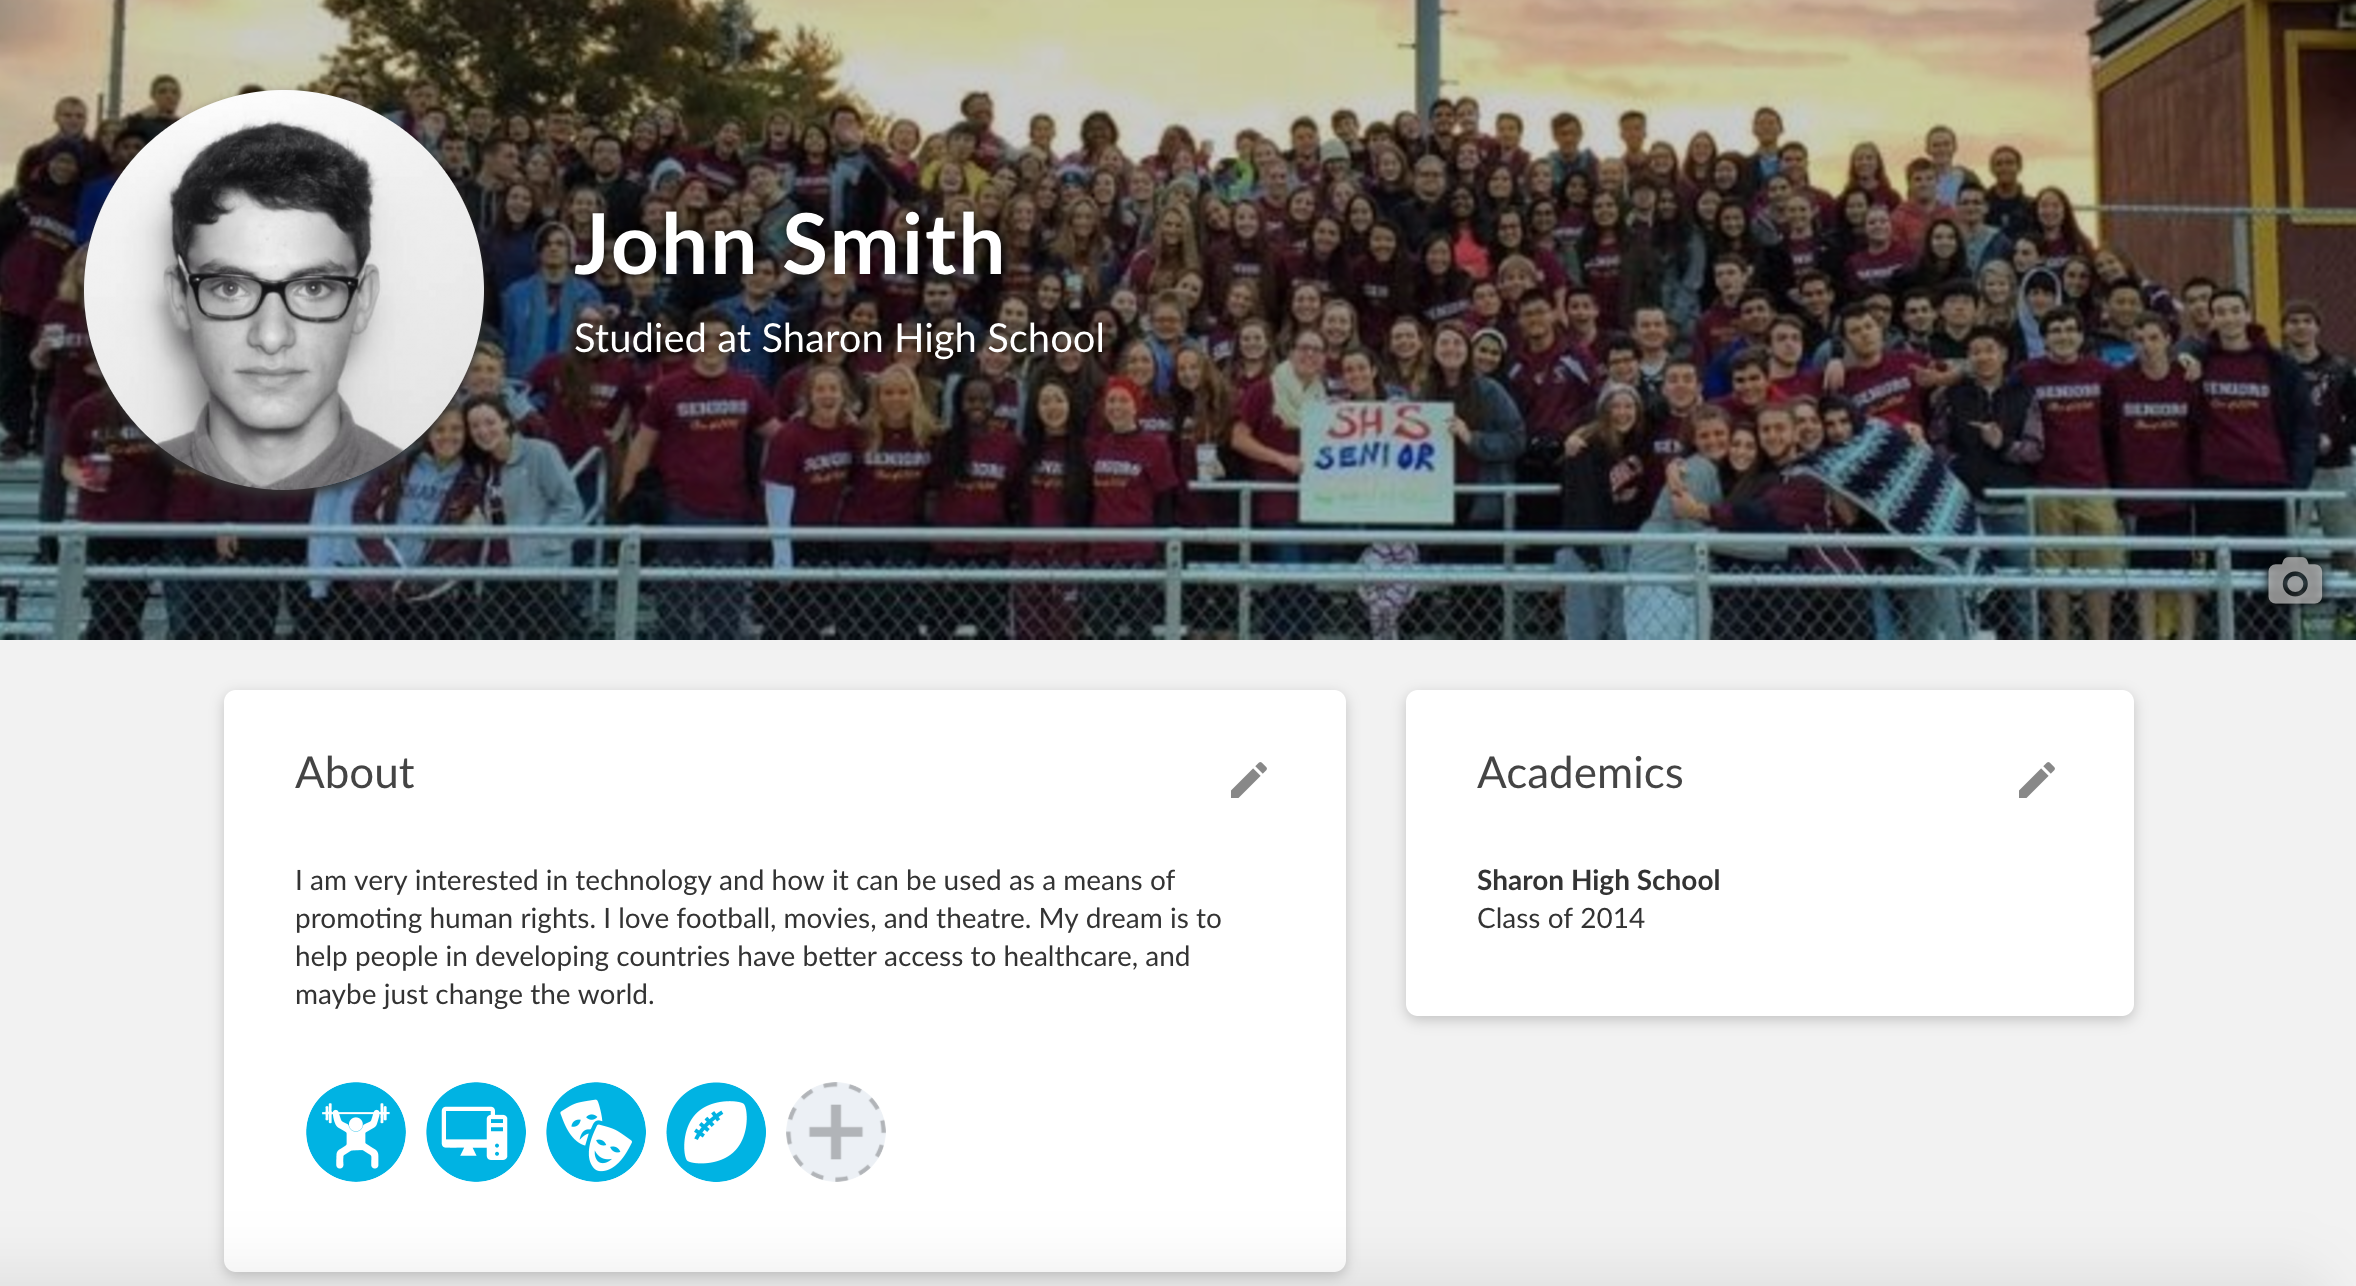 John Smith's Profile